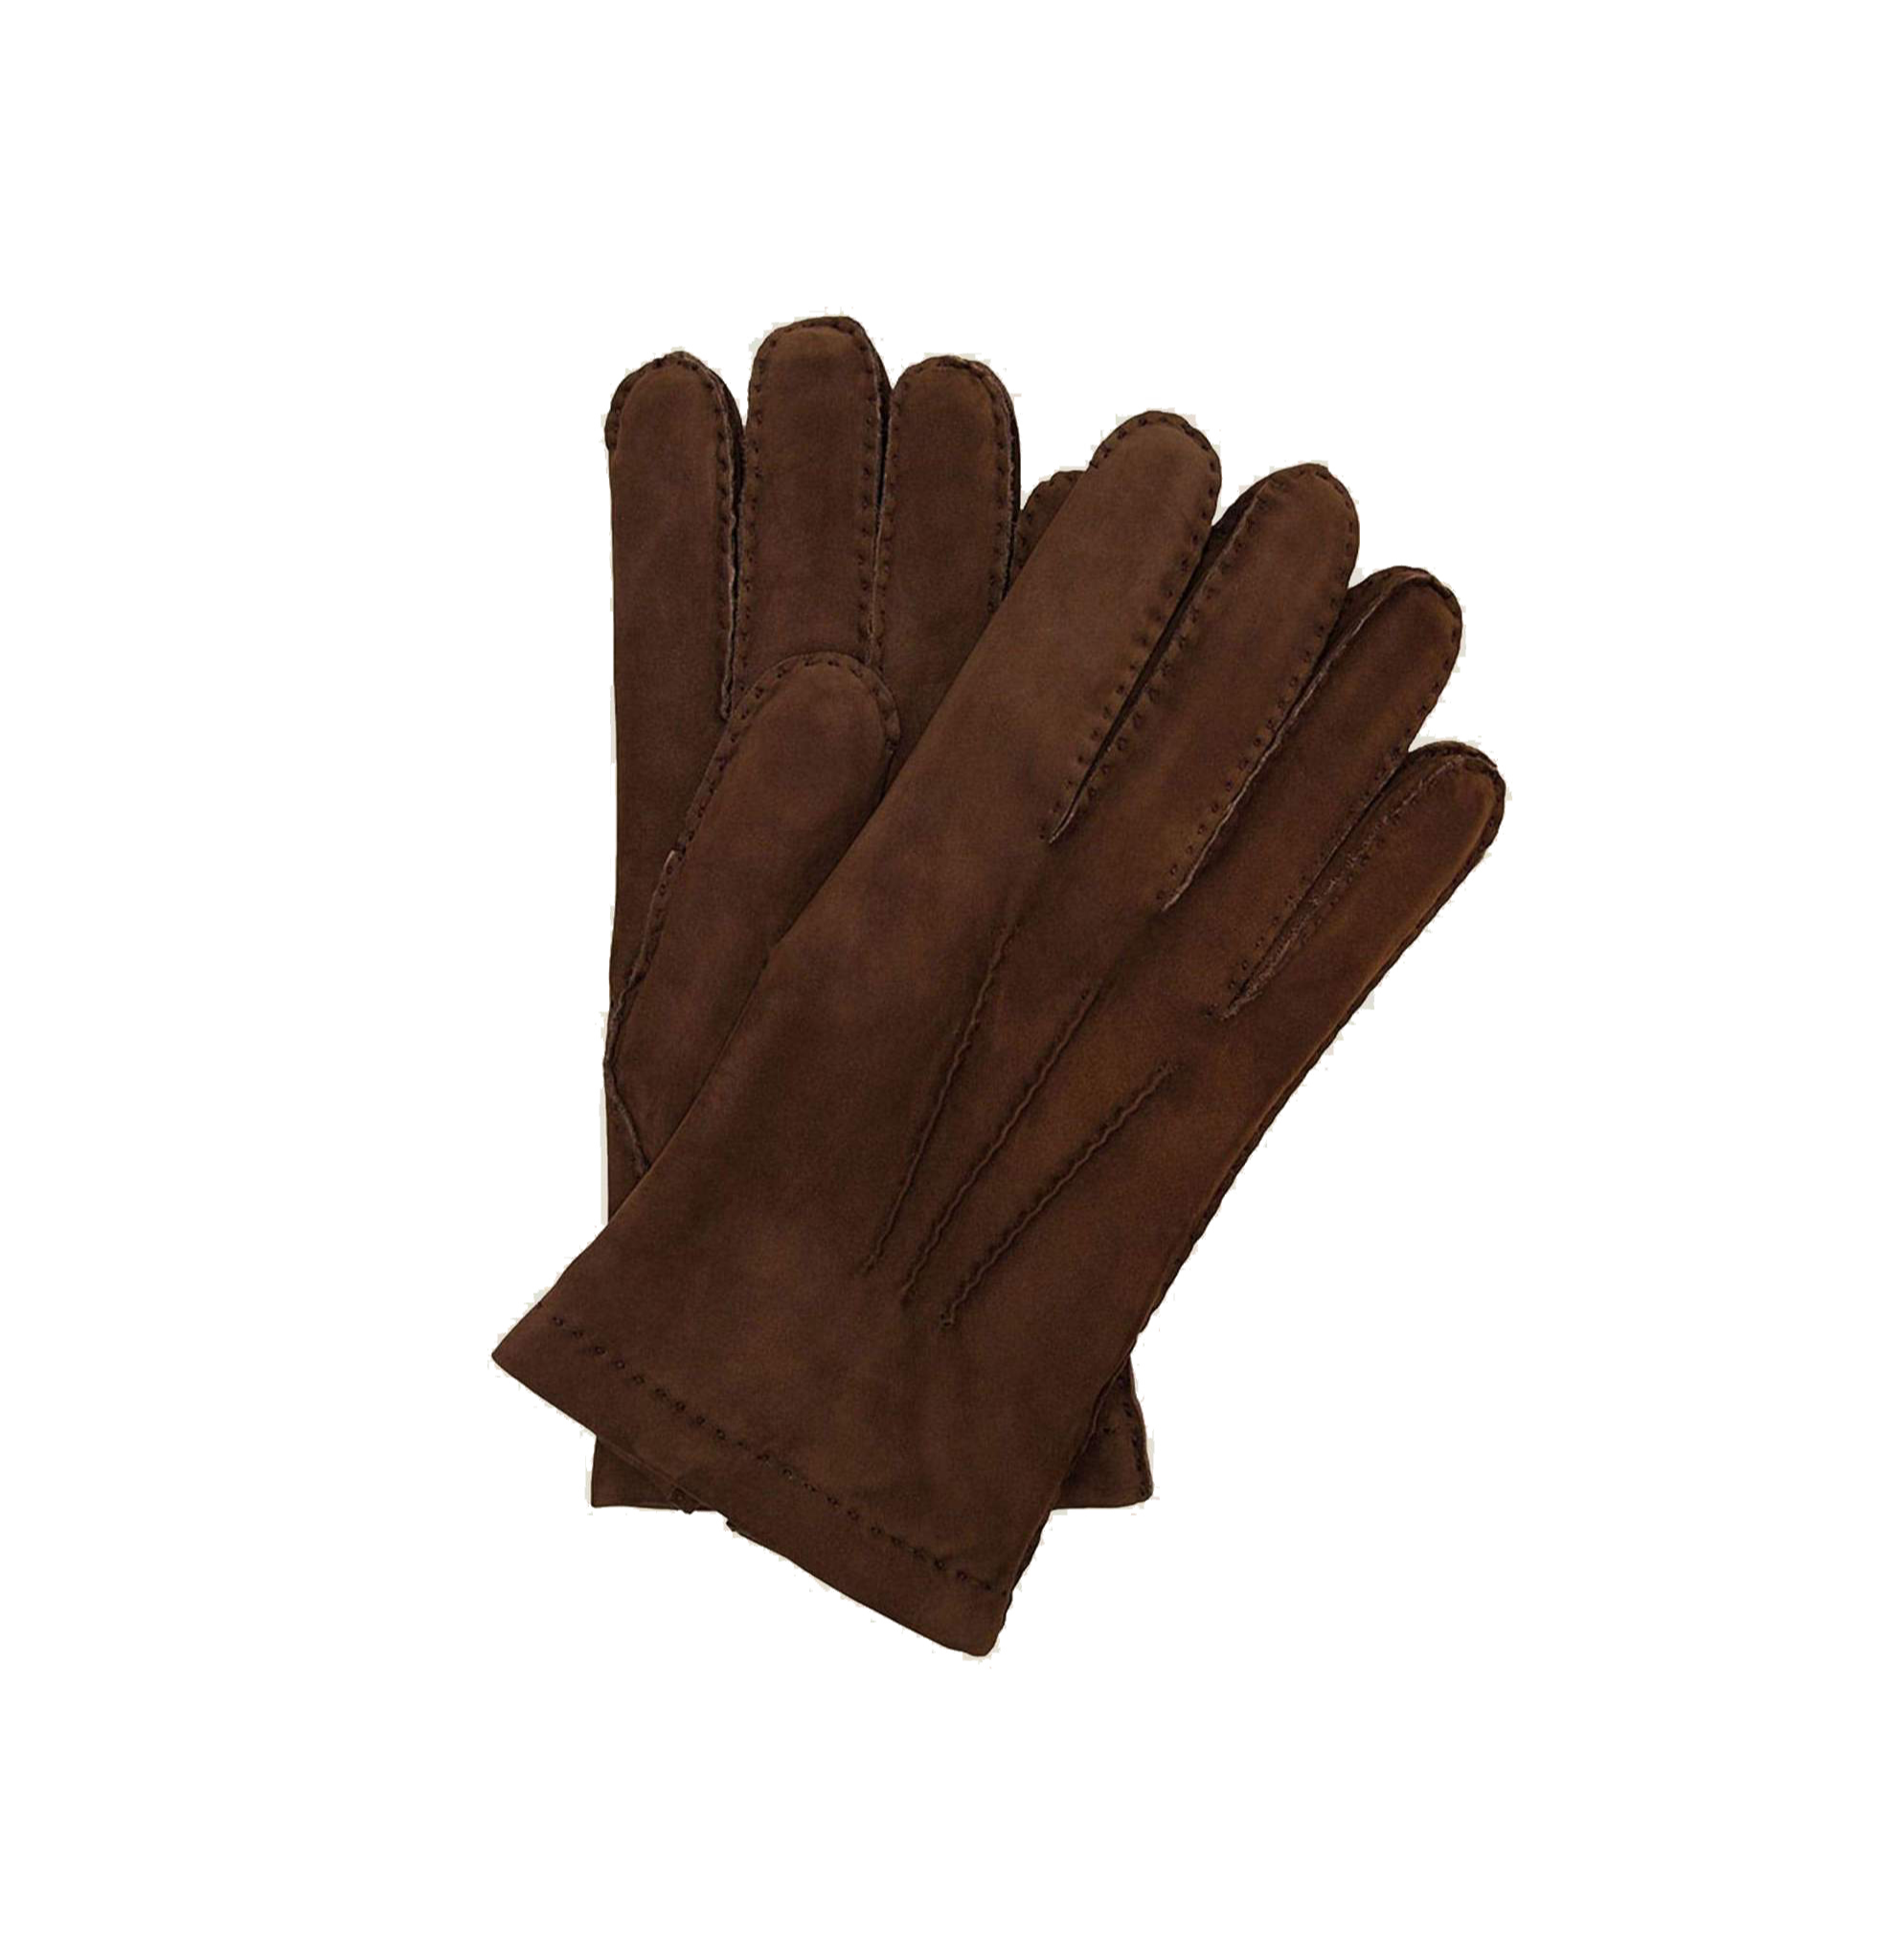 Luca Faloni Brown Leather Gloves Made in Italy